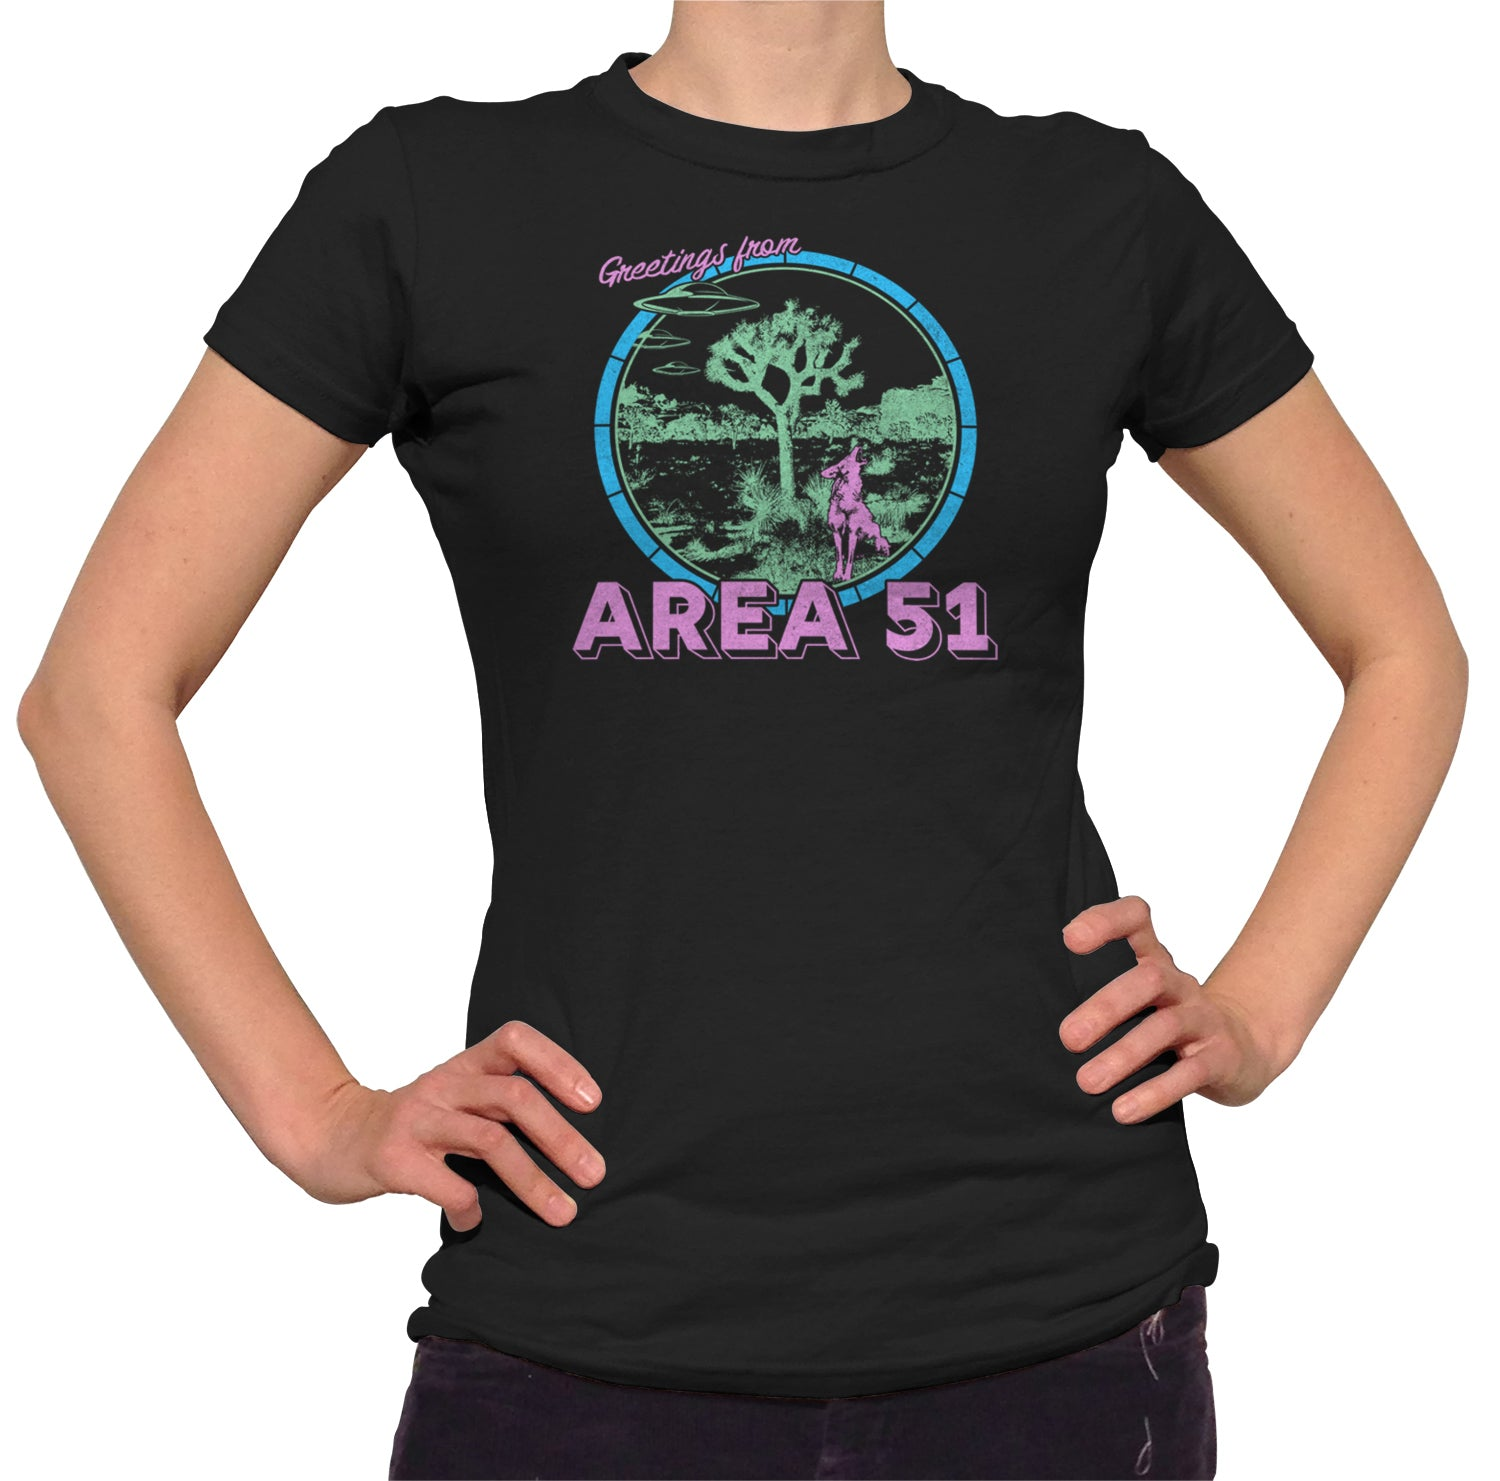 Women's Greetings from Area 51 T-Shirt